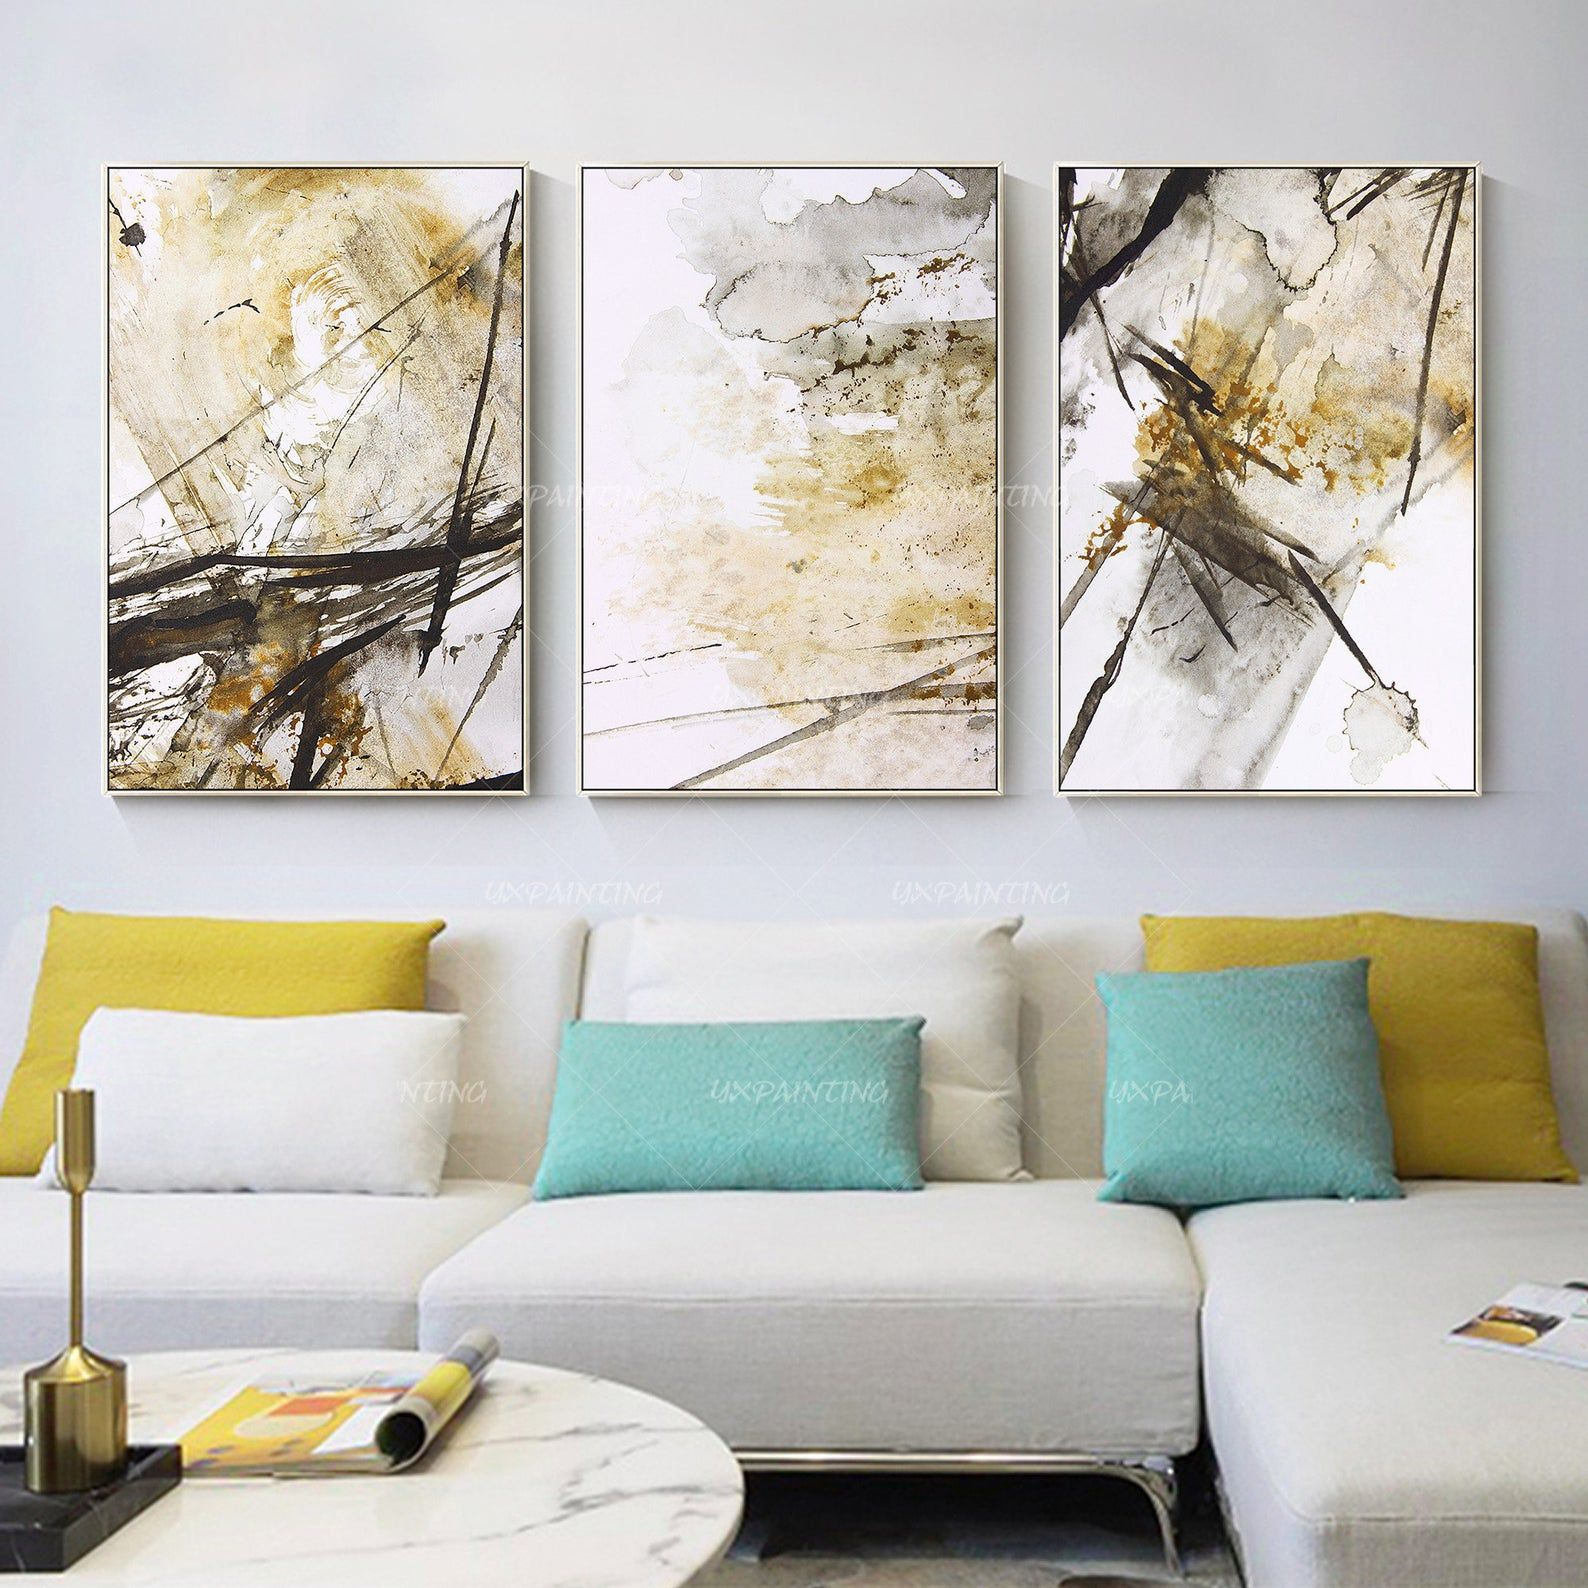 3 pieces wall art abstract print art painting set of 3